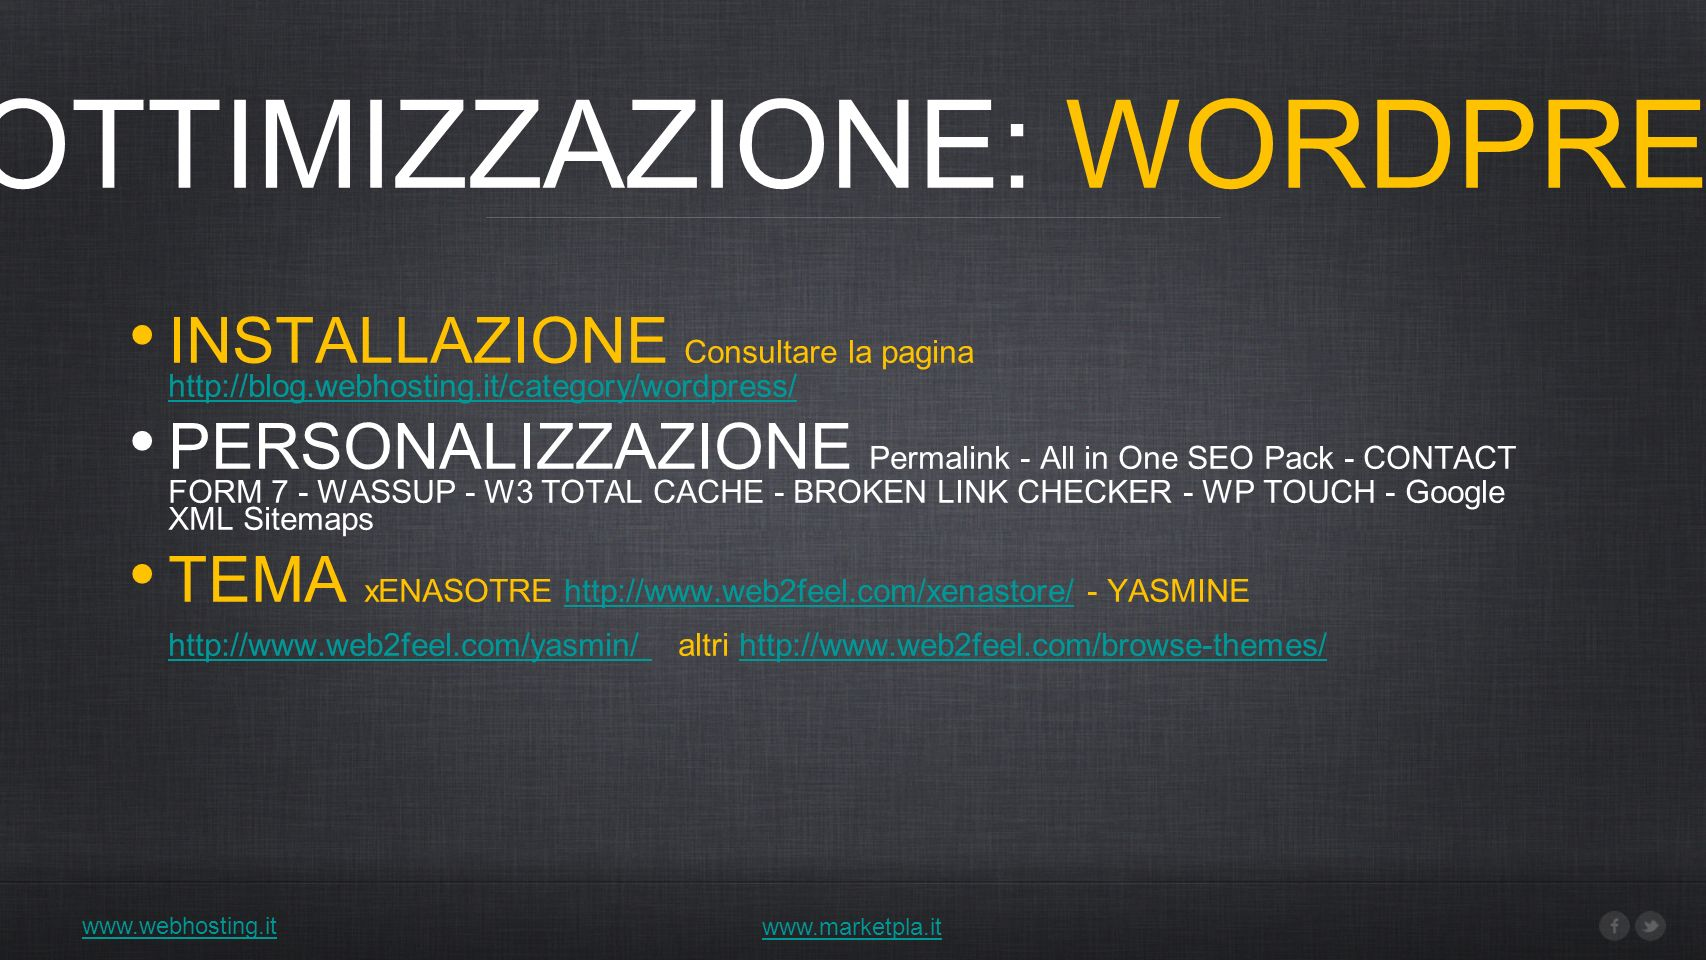 www.webhosting.it 1) OTTIMIZZAZIONE: WORDPRESS www.marketpla.it INSTALLAZIONE Consultare la pagina http://blog.webhosting.it/category/wordpress/ http://blog.webhosting.it/category/wordpress/ PERSONALIZZAZIONE Permalink - All in One SEO Pack - CONTACT FORM 7 - WASSUP - W3 TOTAL CACHE - BROKEN LINK CHECKER - WP TOUCH - Google XML Sitemaps TEMA xENASOTRE http://www.web2feel.com/xenastore/ - YASMINE http://www.web2feel.com/yasmin/ altri http://www.web2feel.com/browse-themes/http://www.web2feel.com/xenastore/ http://www.web2feel.com/yasmin/ http://www.web2feel.com/browse-themes/